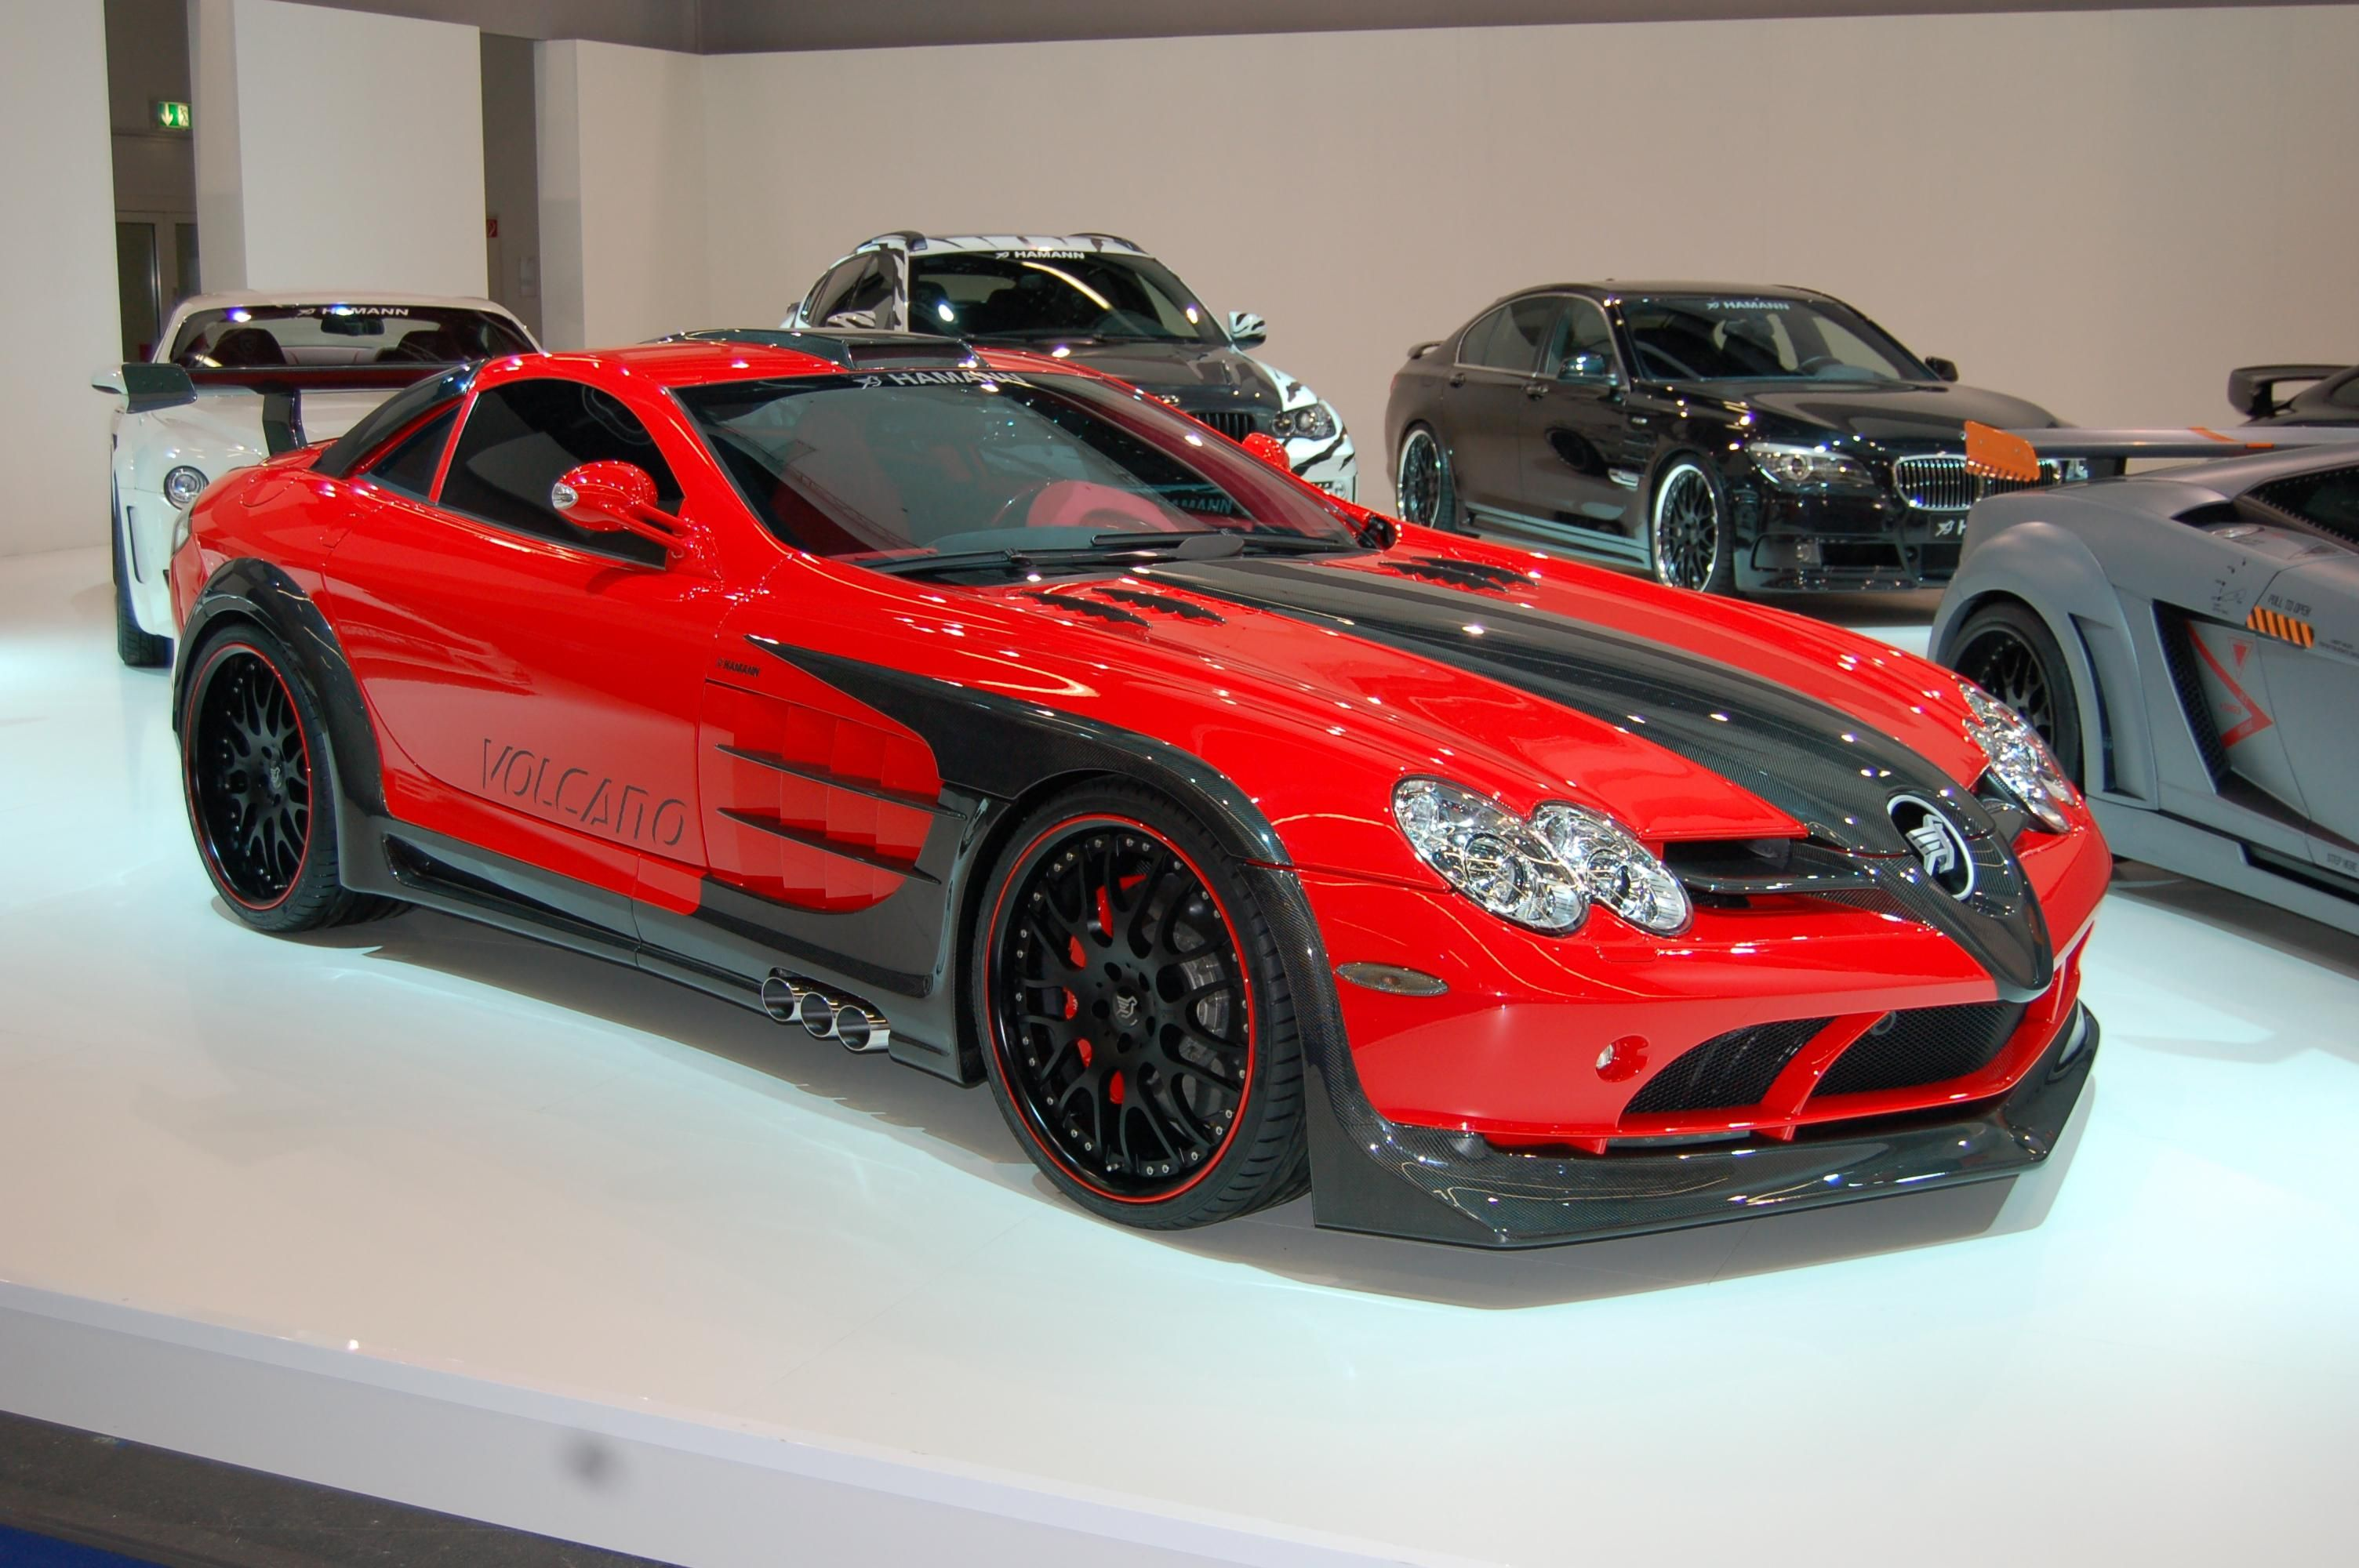 Cool Exotic Cars Pictures Mercedes Benz Slr Tuned